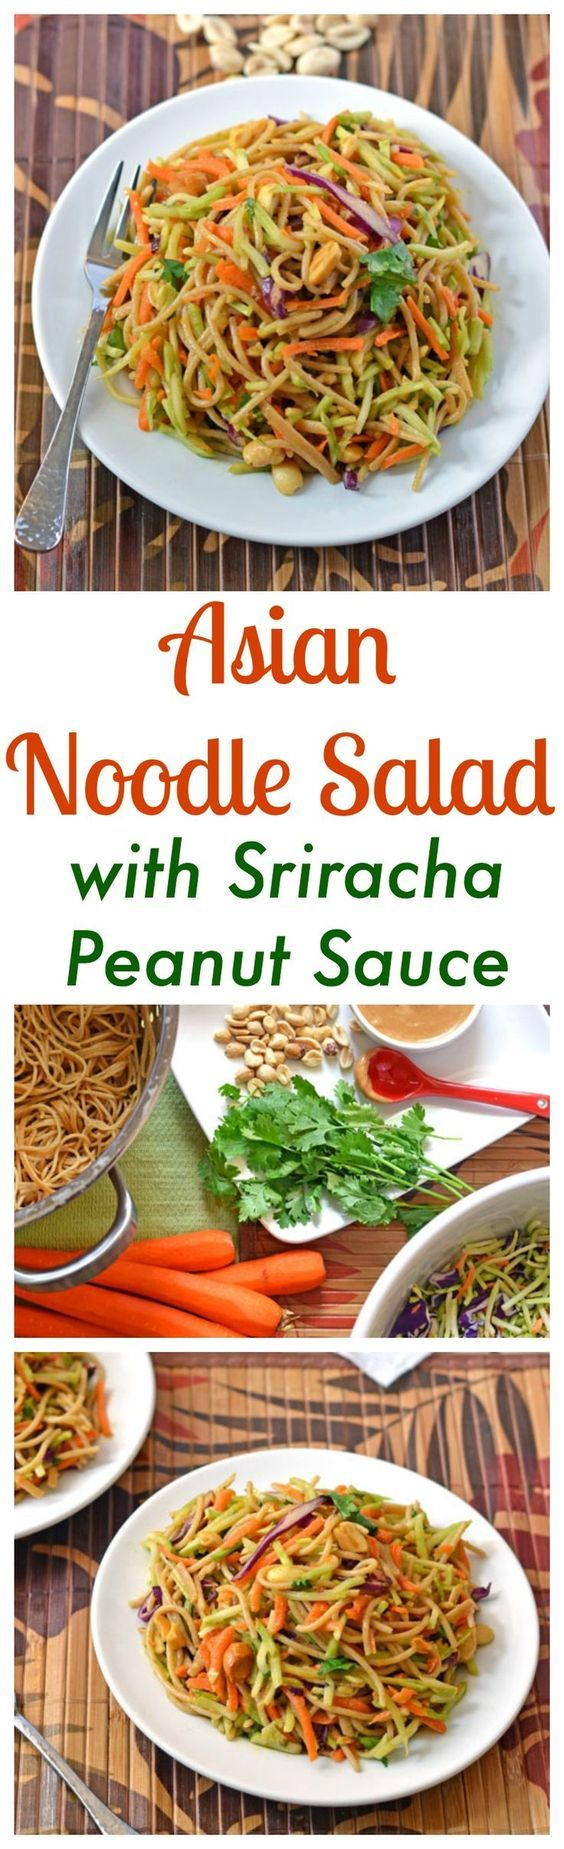 Asian Noodle Salad with Sriracha Peanut Sauce. Awesome Fourth of July recipe!